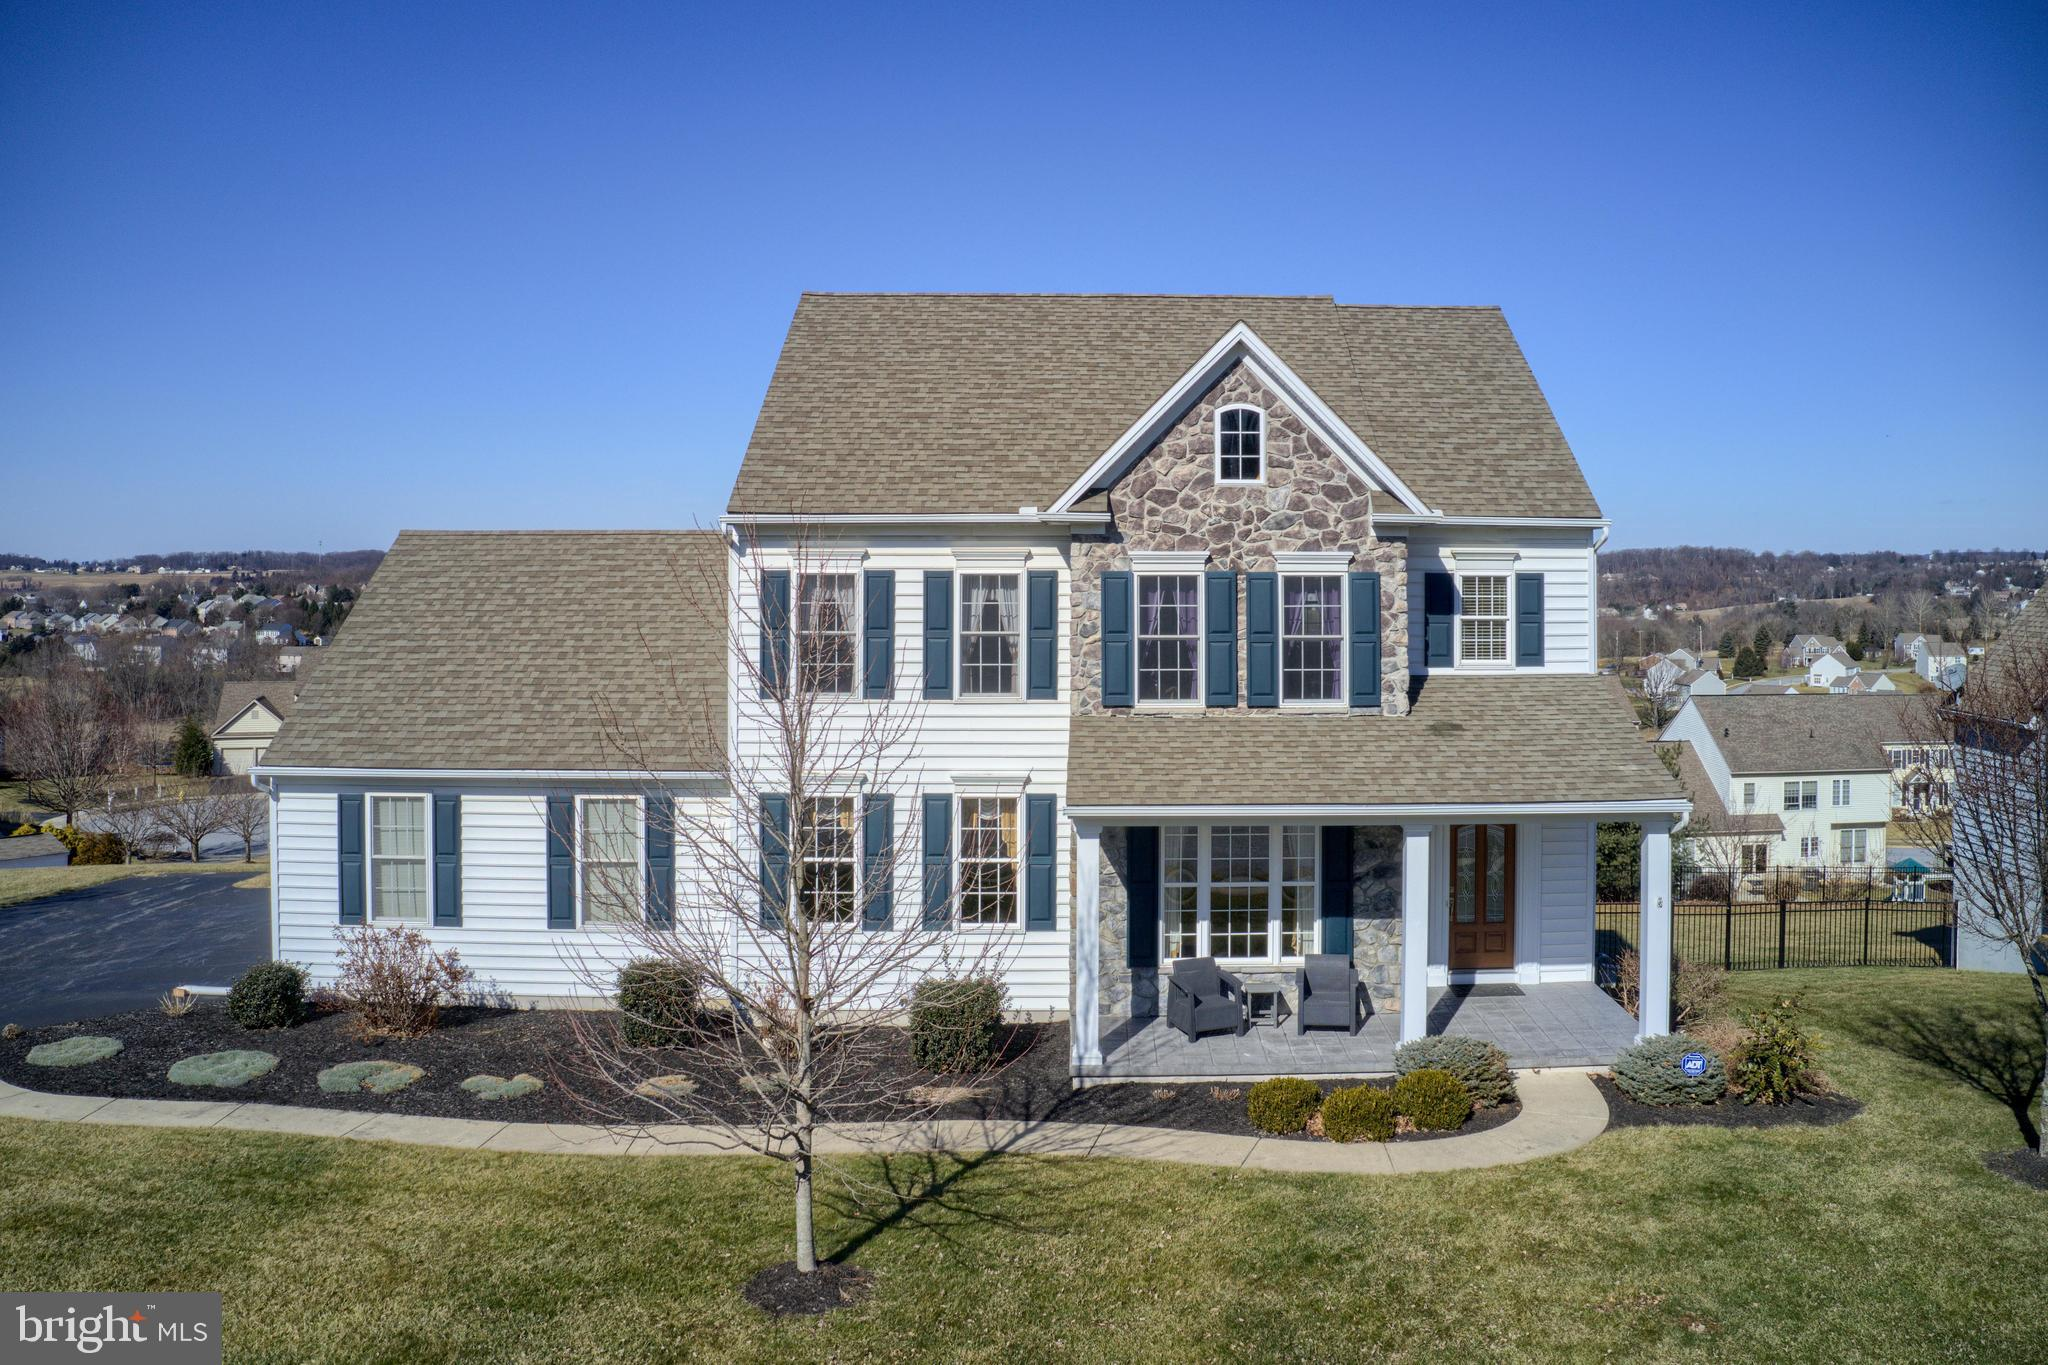 740 CONNOLLY DRIVE, RED LION, PA 17356